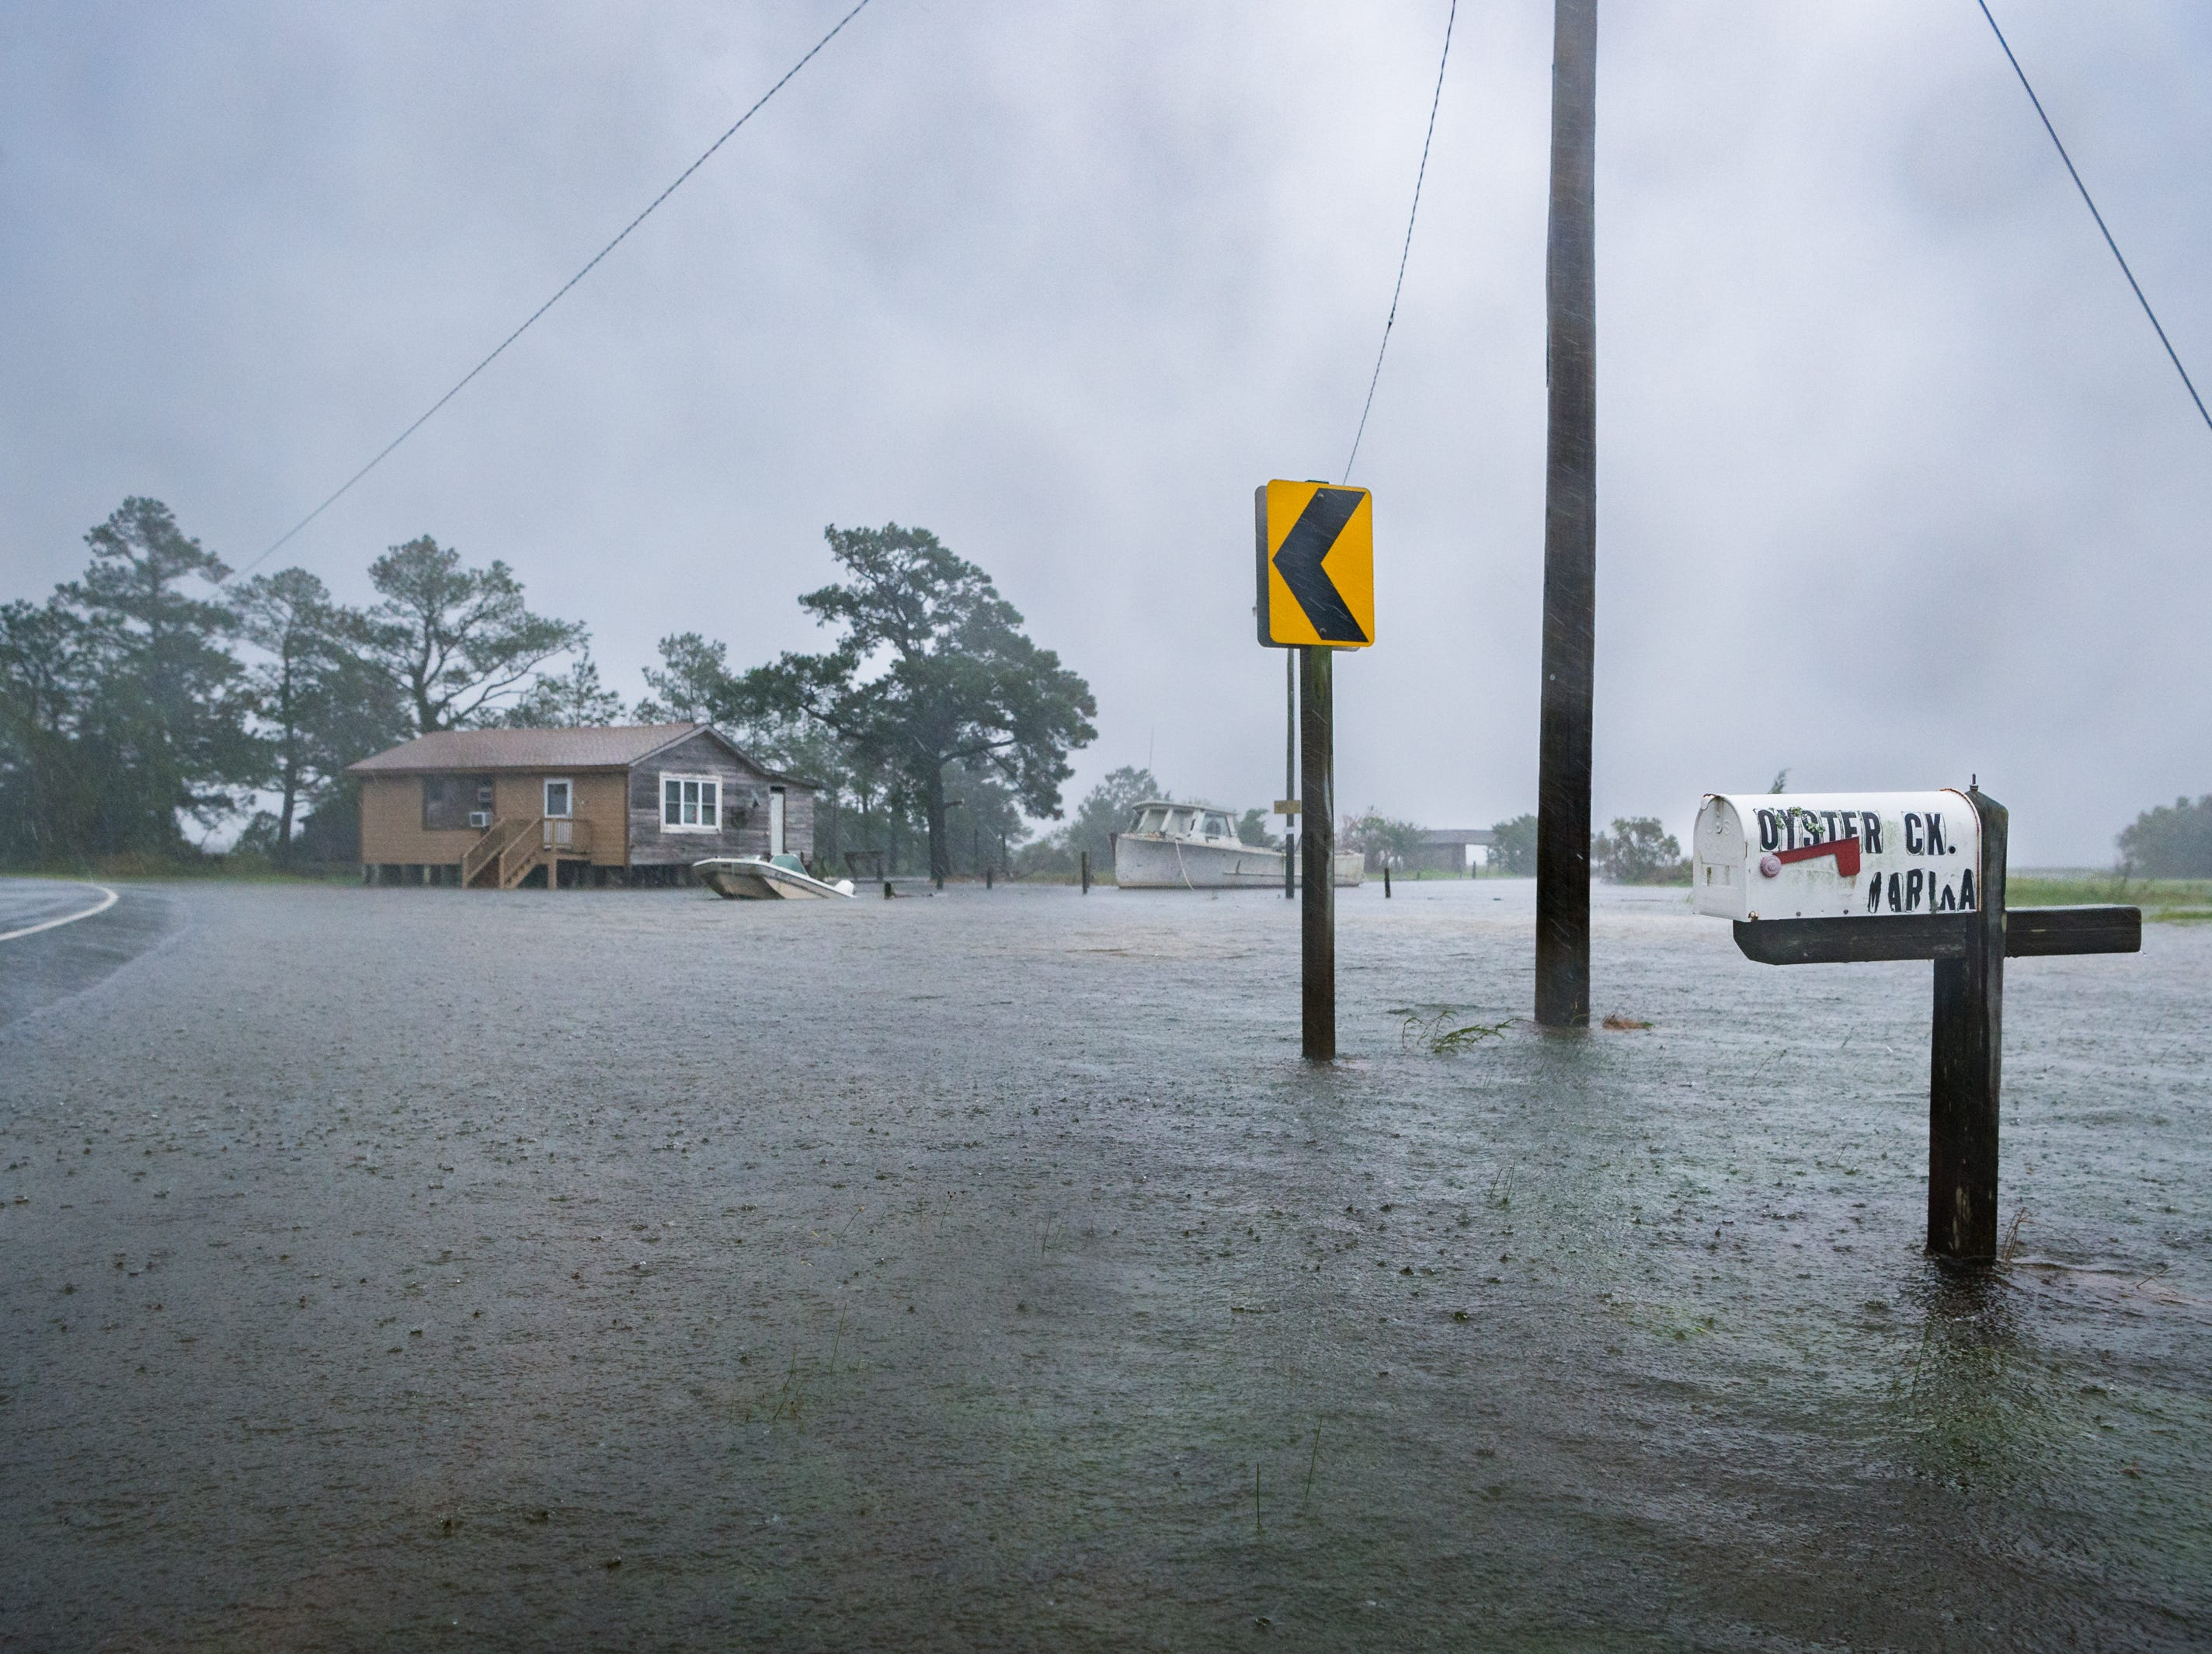 A mailbox on Oyster Creek Street in Swan Quarter, N.C., sits partially submerged as heavy rain and wind increases with Hurricane Florence moving closer to the coastline Sept. 13, 2018.